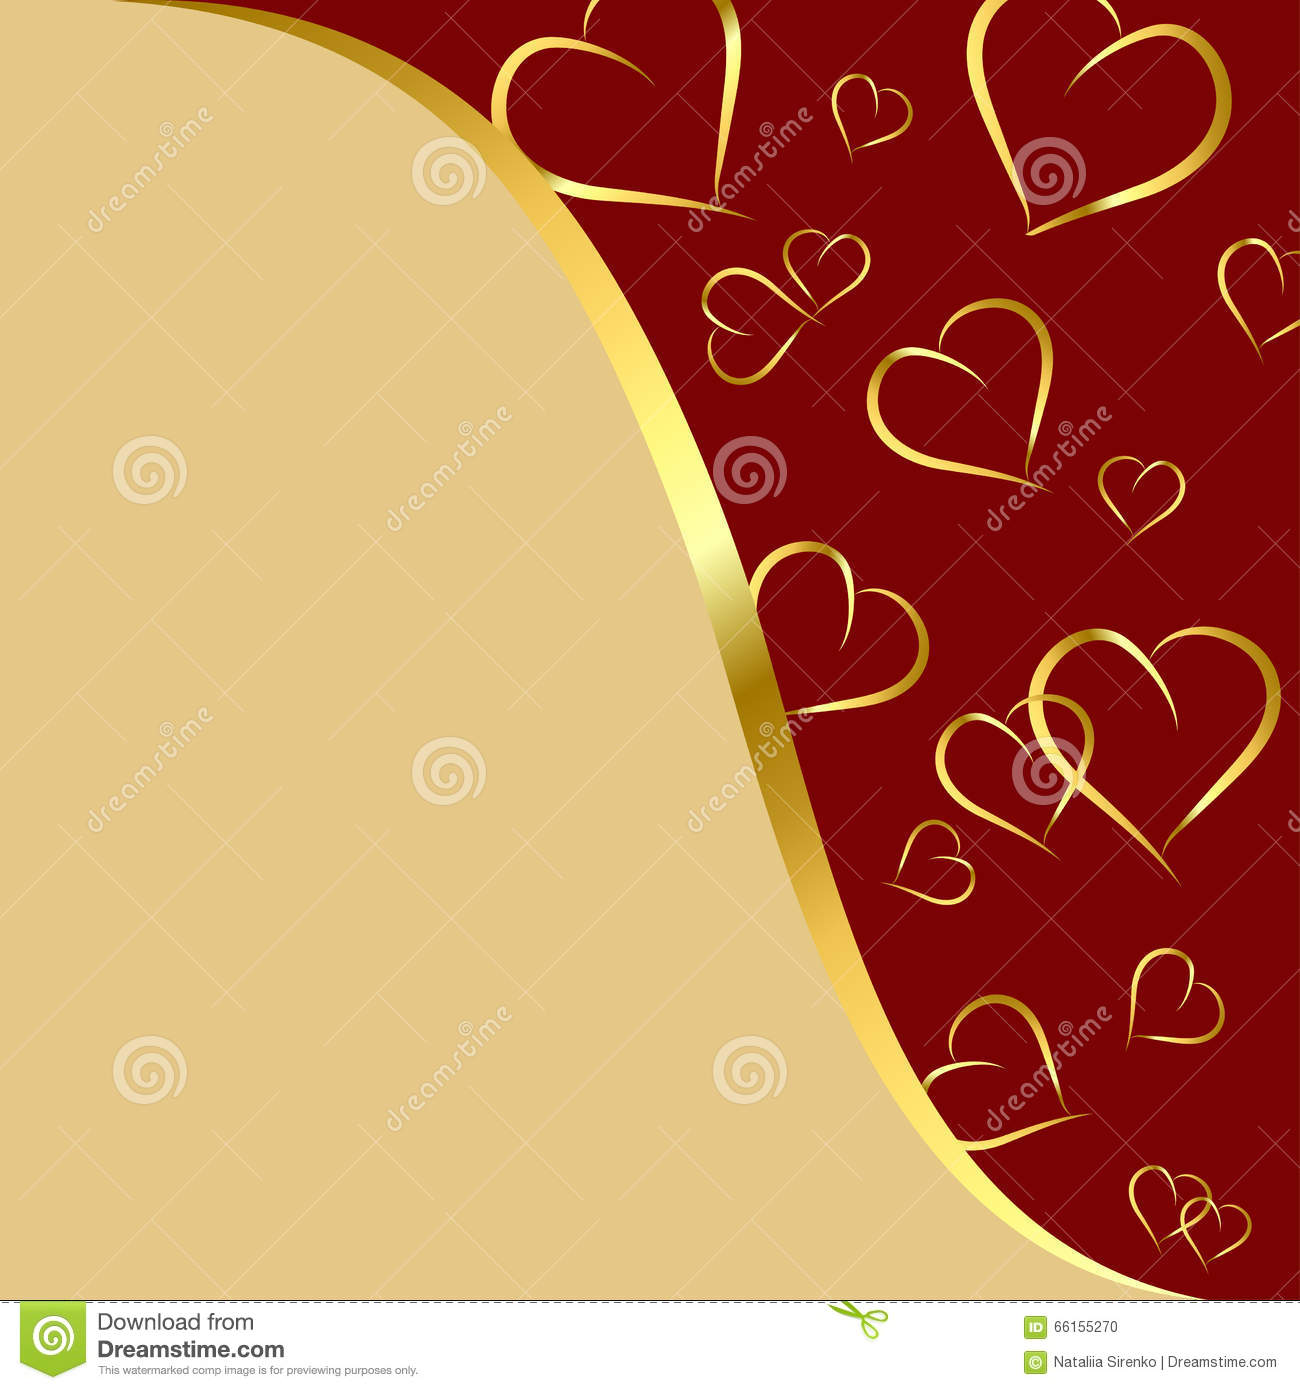 Maroon And Gold Background With Hearts Stock Illustration ...